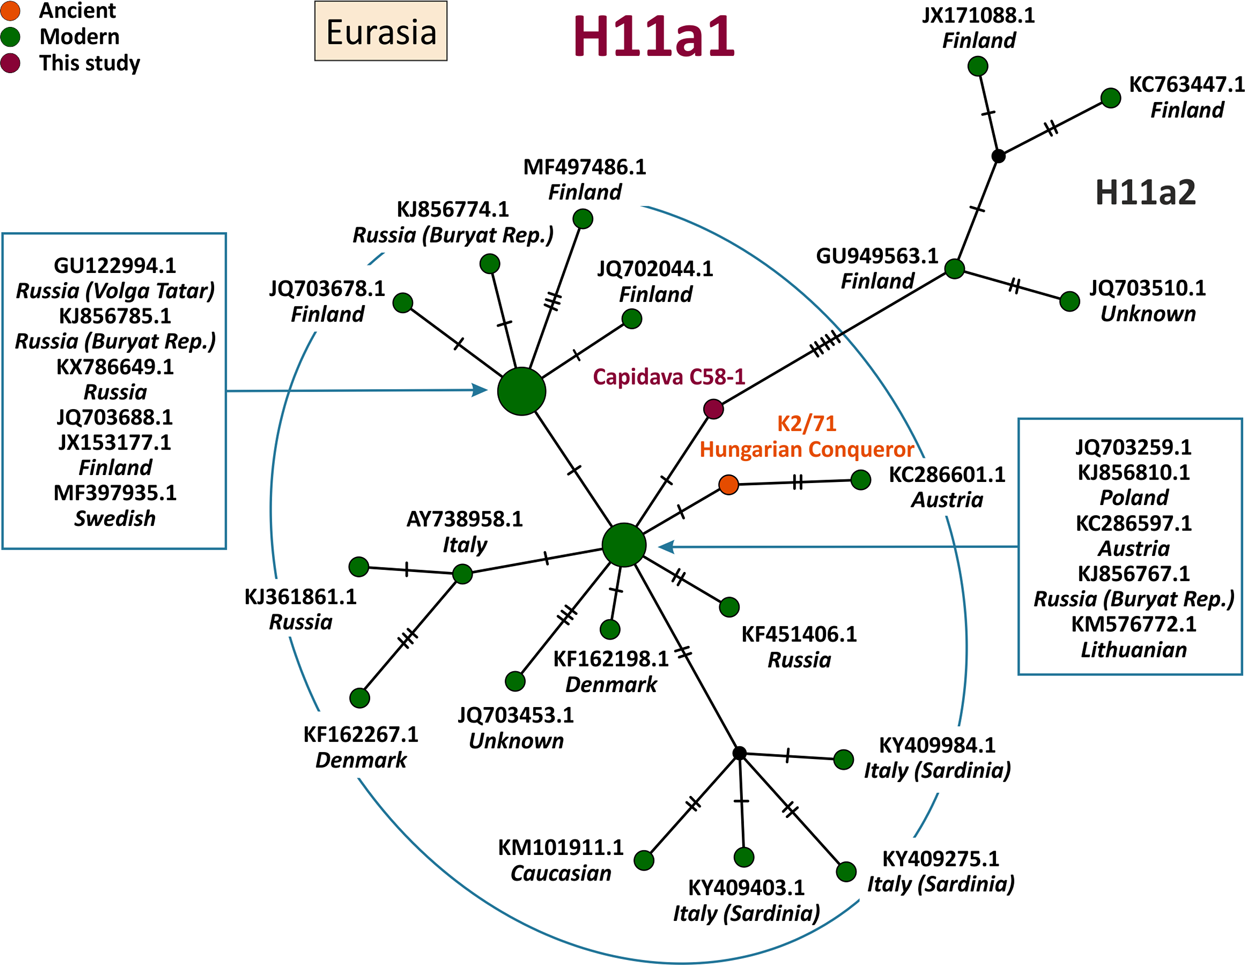 Mitochondrial ancestry of medieval individuals carelessly